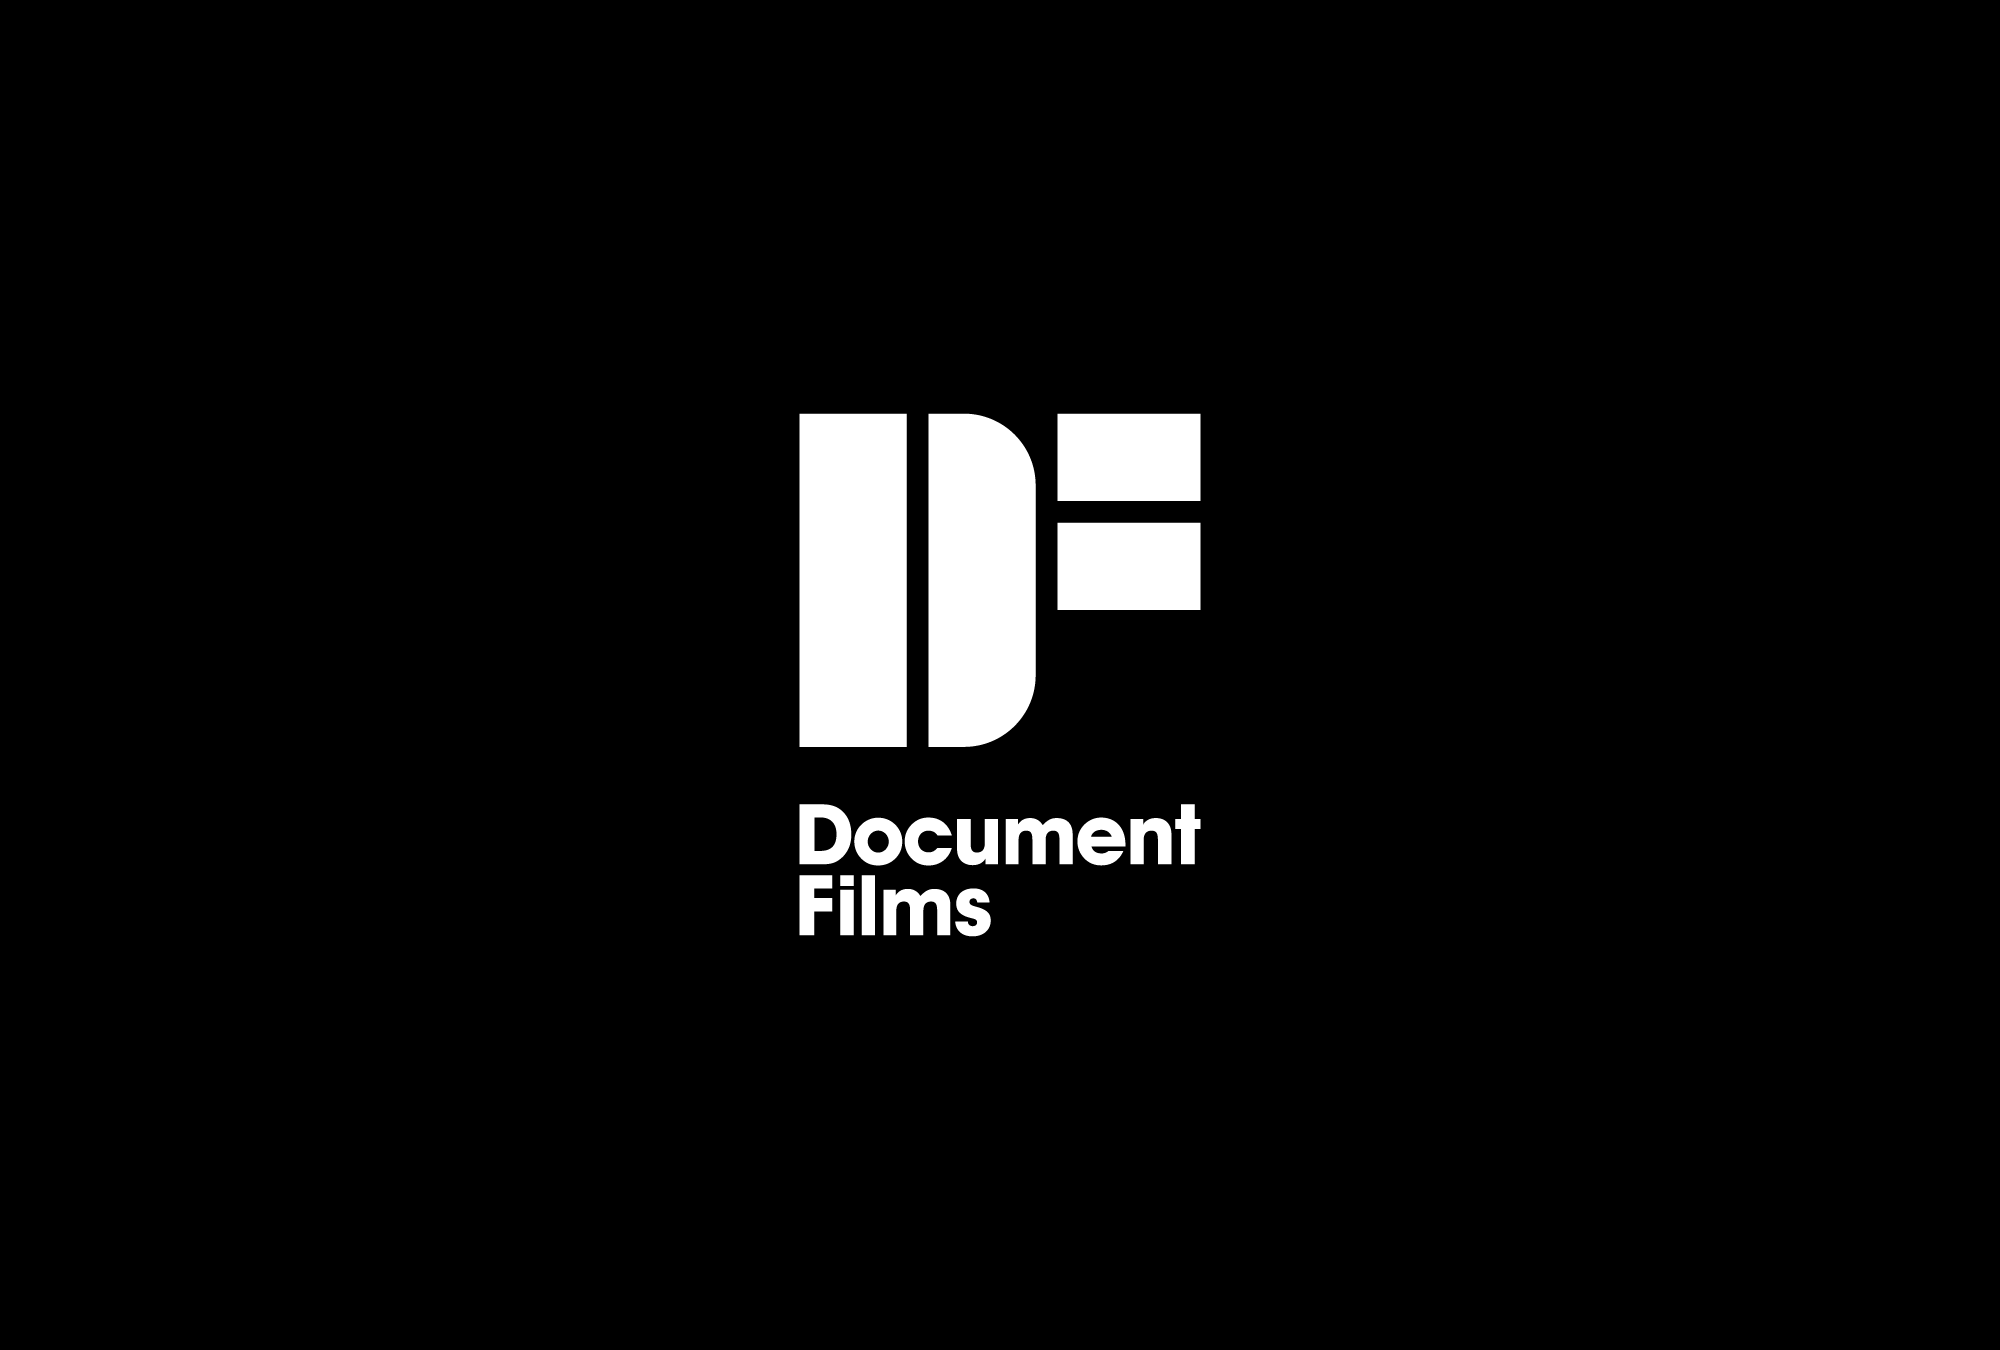 Cover image: Document Films Identity